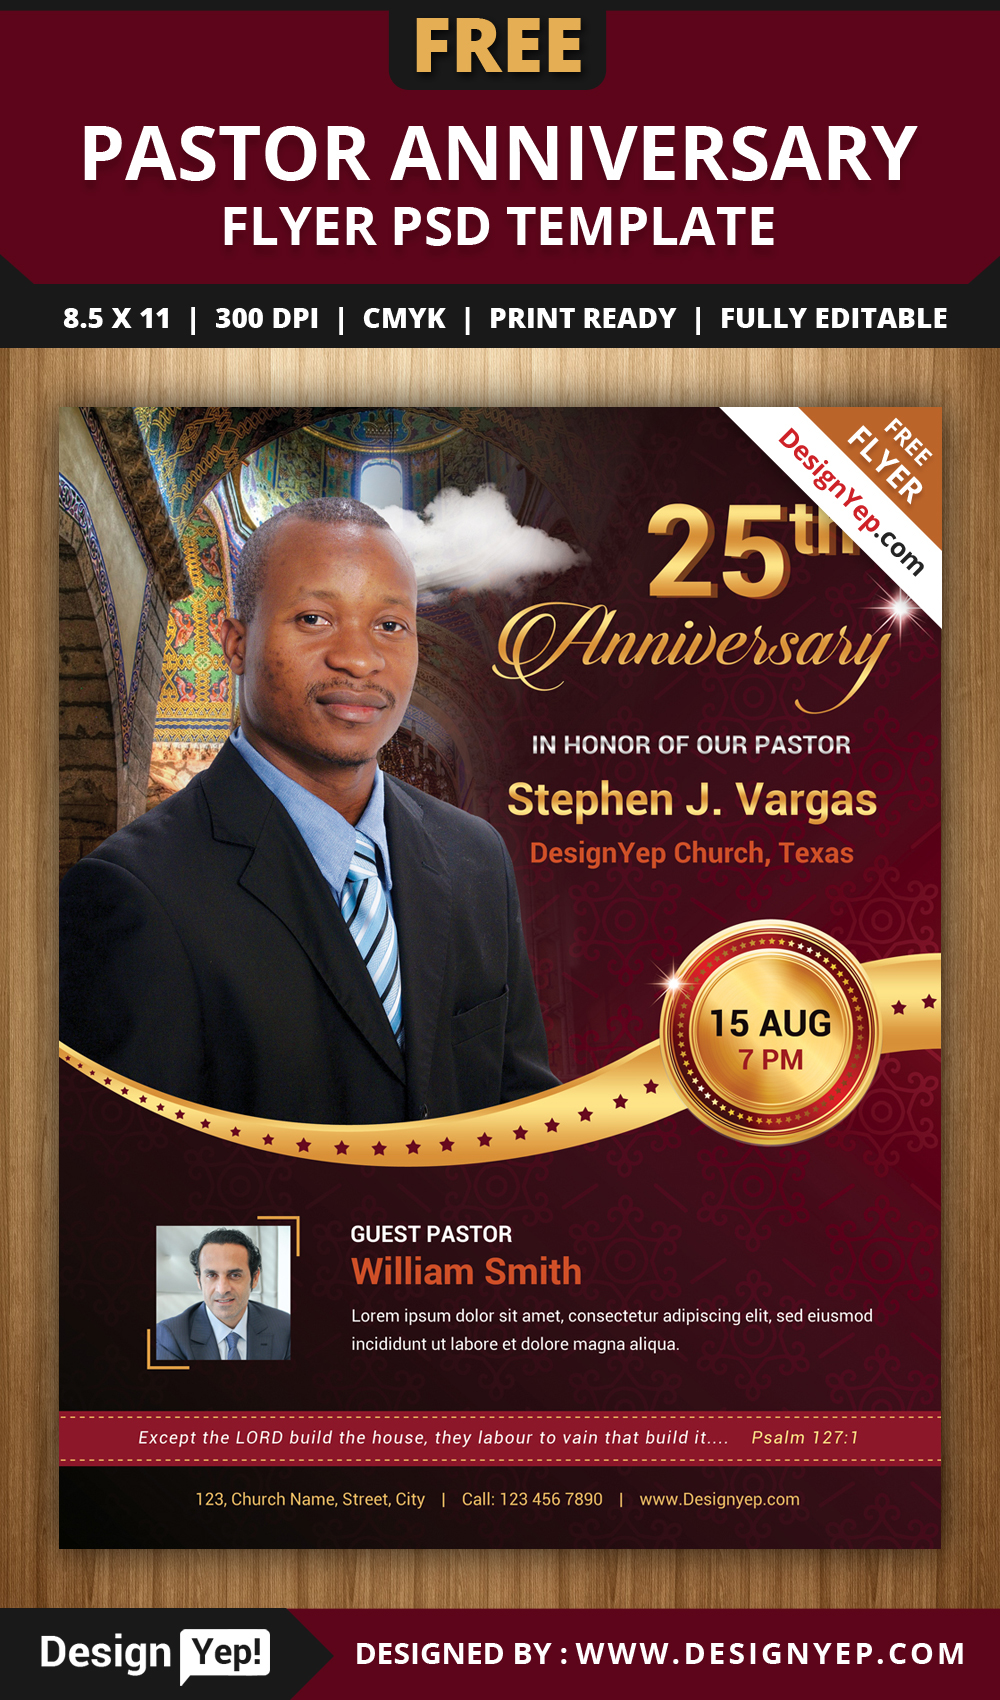 Free Pastor Anniversary Flyer Psd Template On Behance